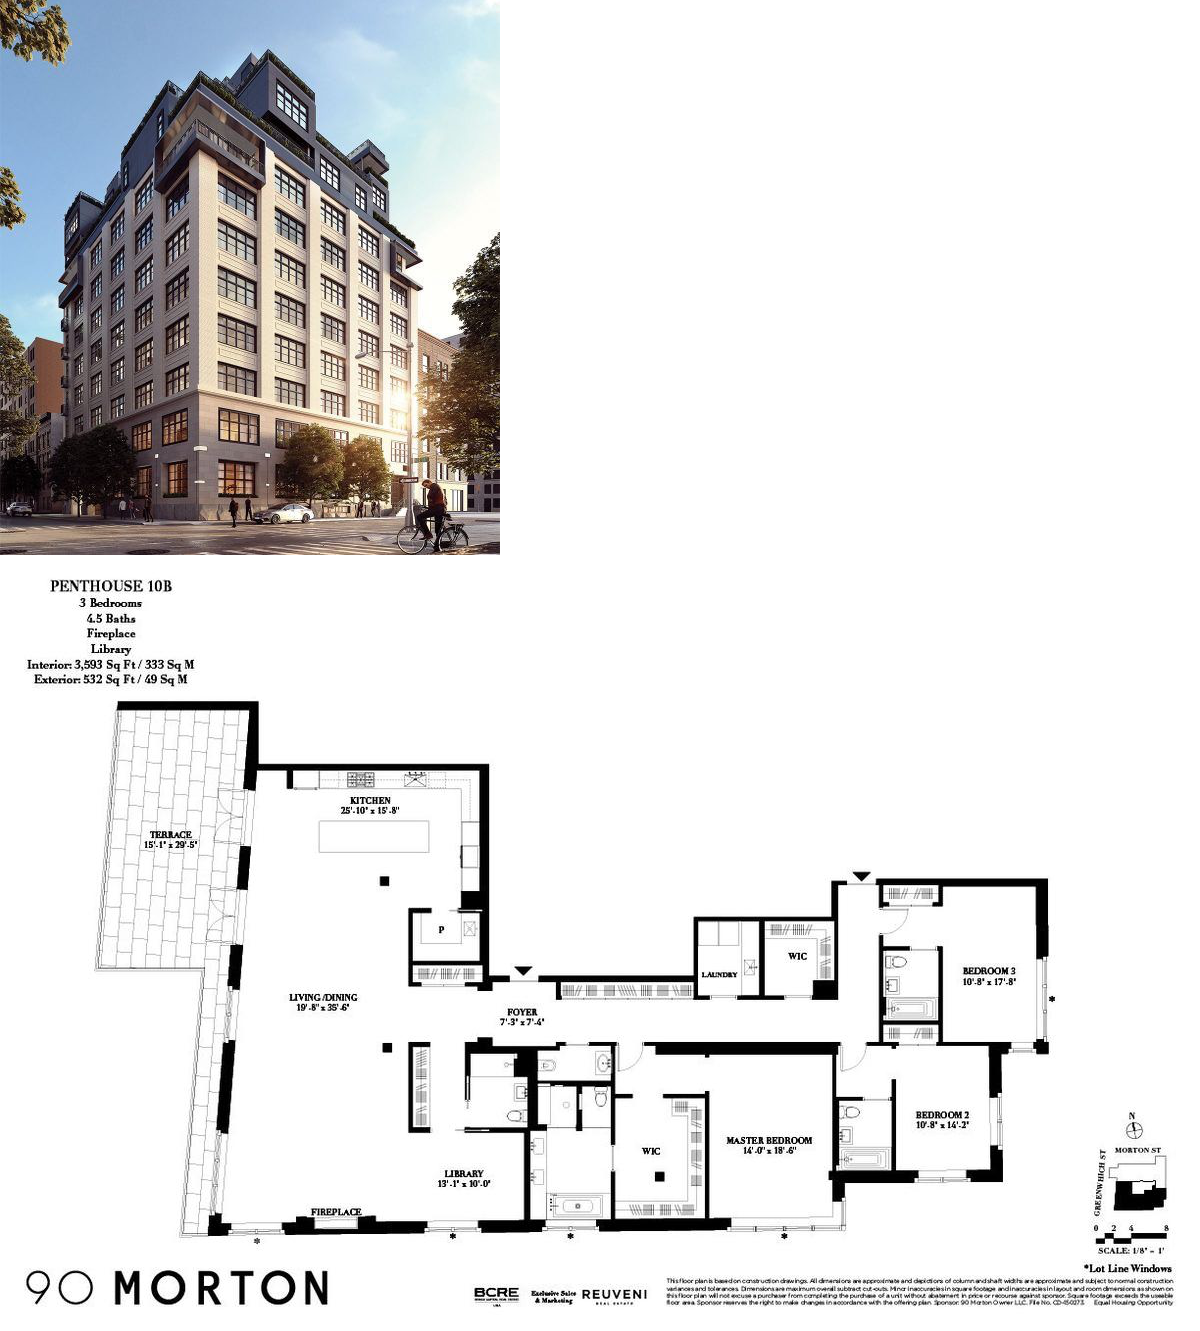 90 Morton Street Penthouse 10b This Is The Reinvention Of 90 Morton Street A Turn Of The Century Luxu Apartment Floor Plans Floor Plans New York Apartments